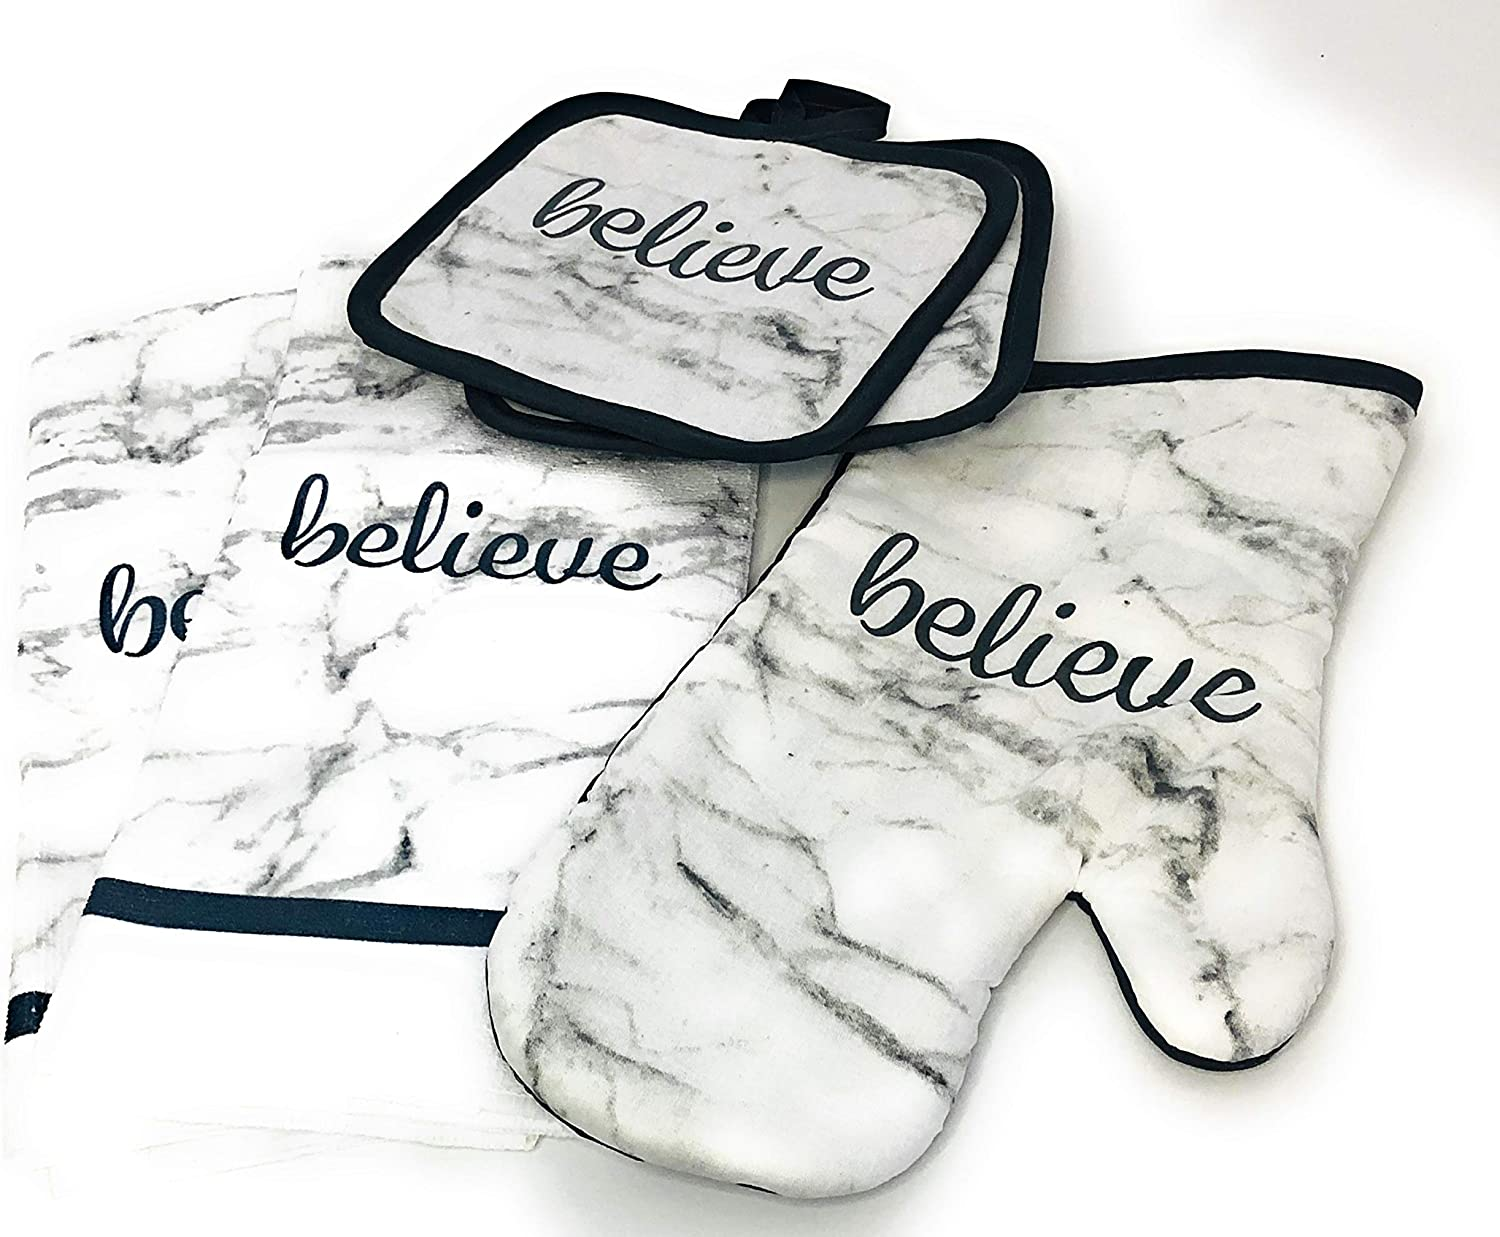 Home Collection 5 Piece Kitchen Linen Bundle with 2 Dish Towels, 2 Potholders, and 1 Oven Mitt (Believe)